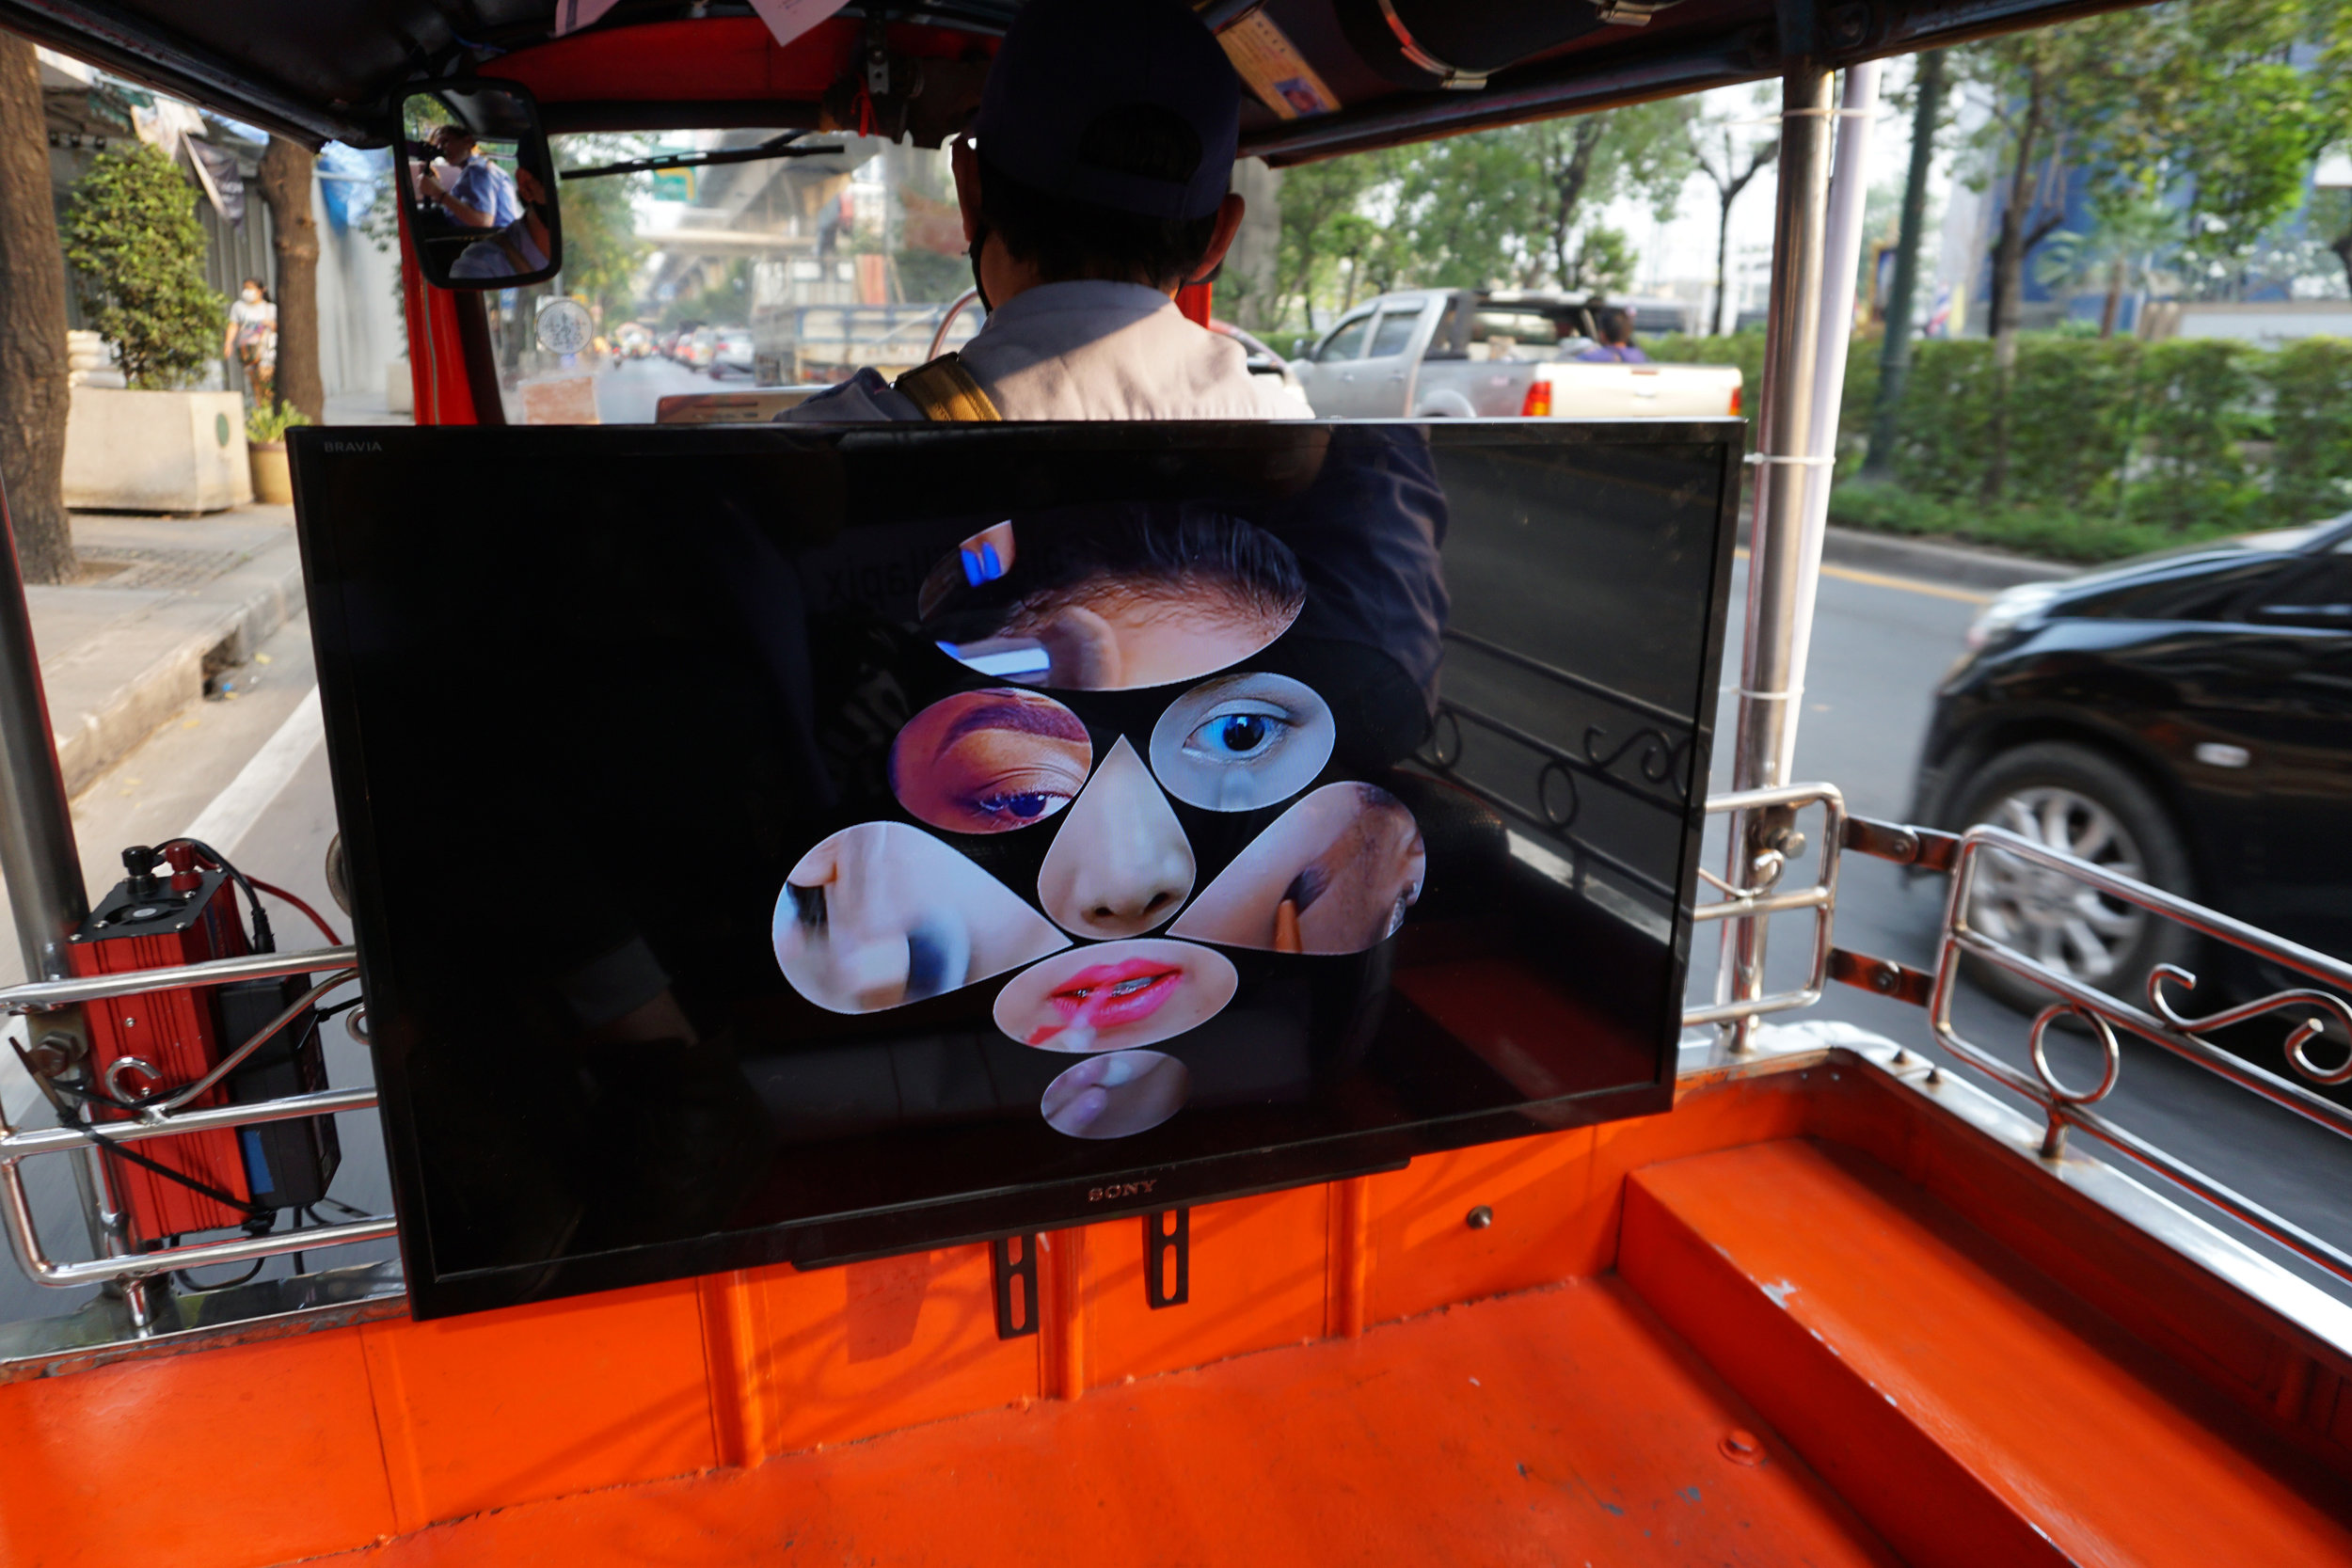 Install view during Pockmark, 2019, a mobile video art experience  Bangkok, Thailand